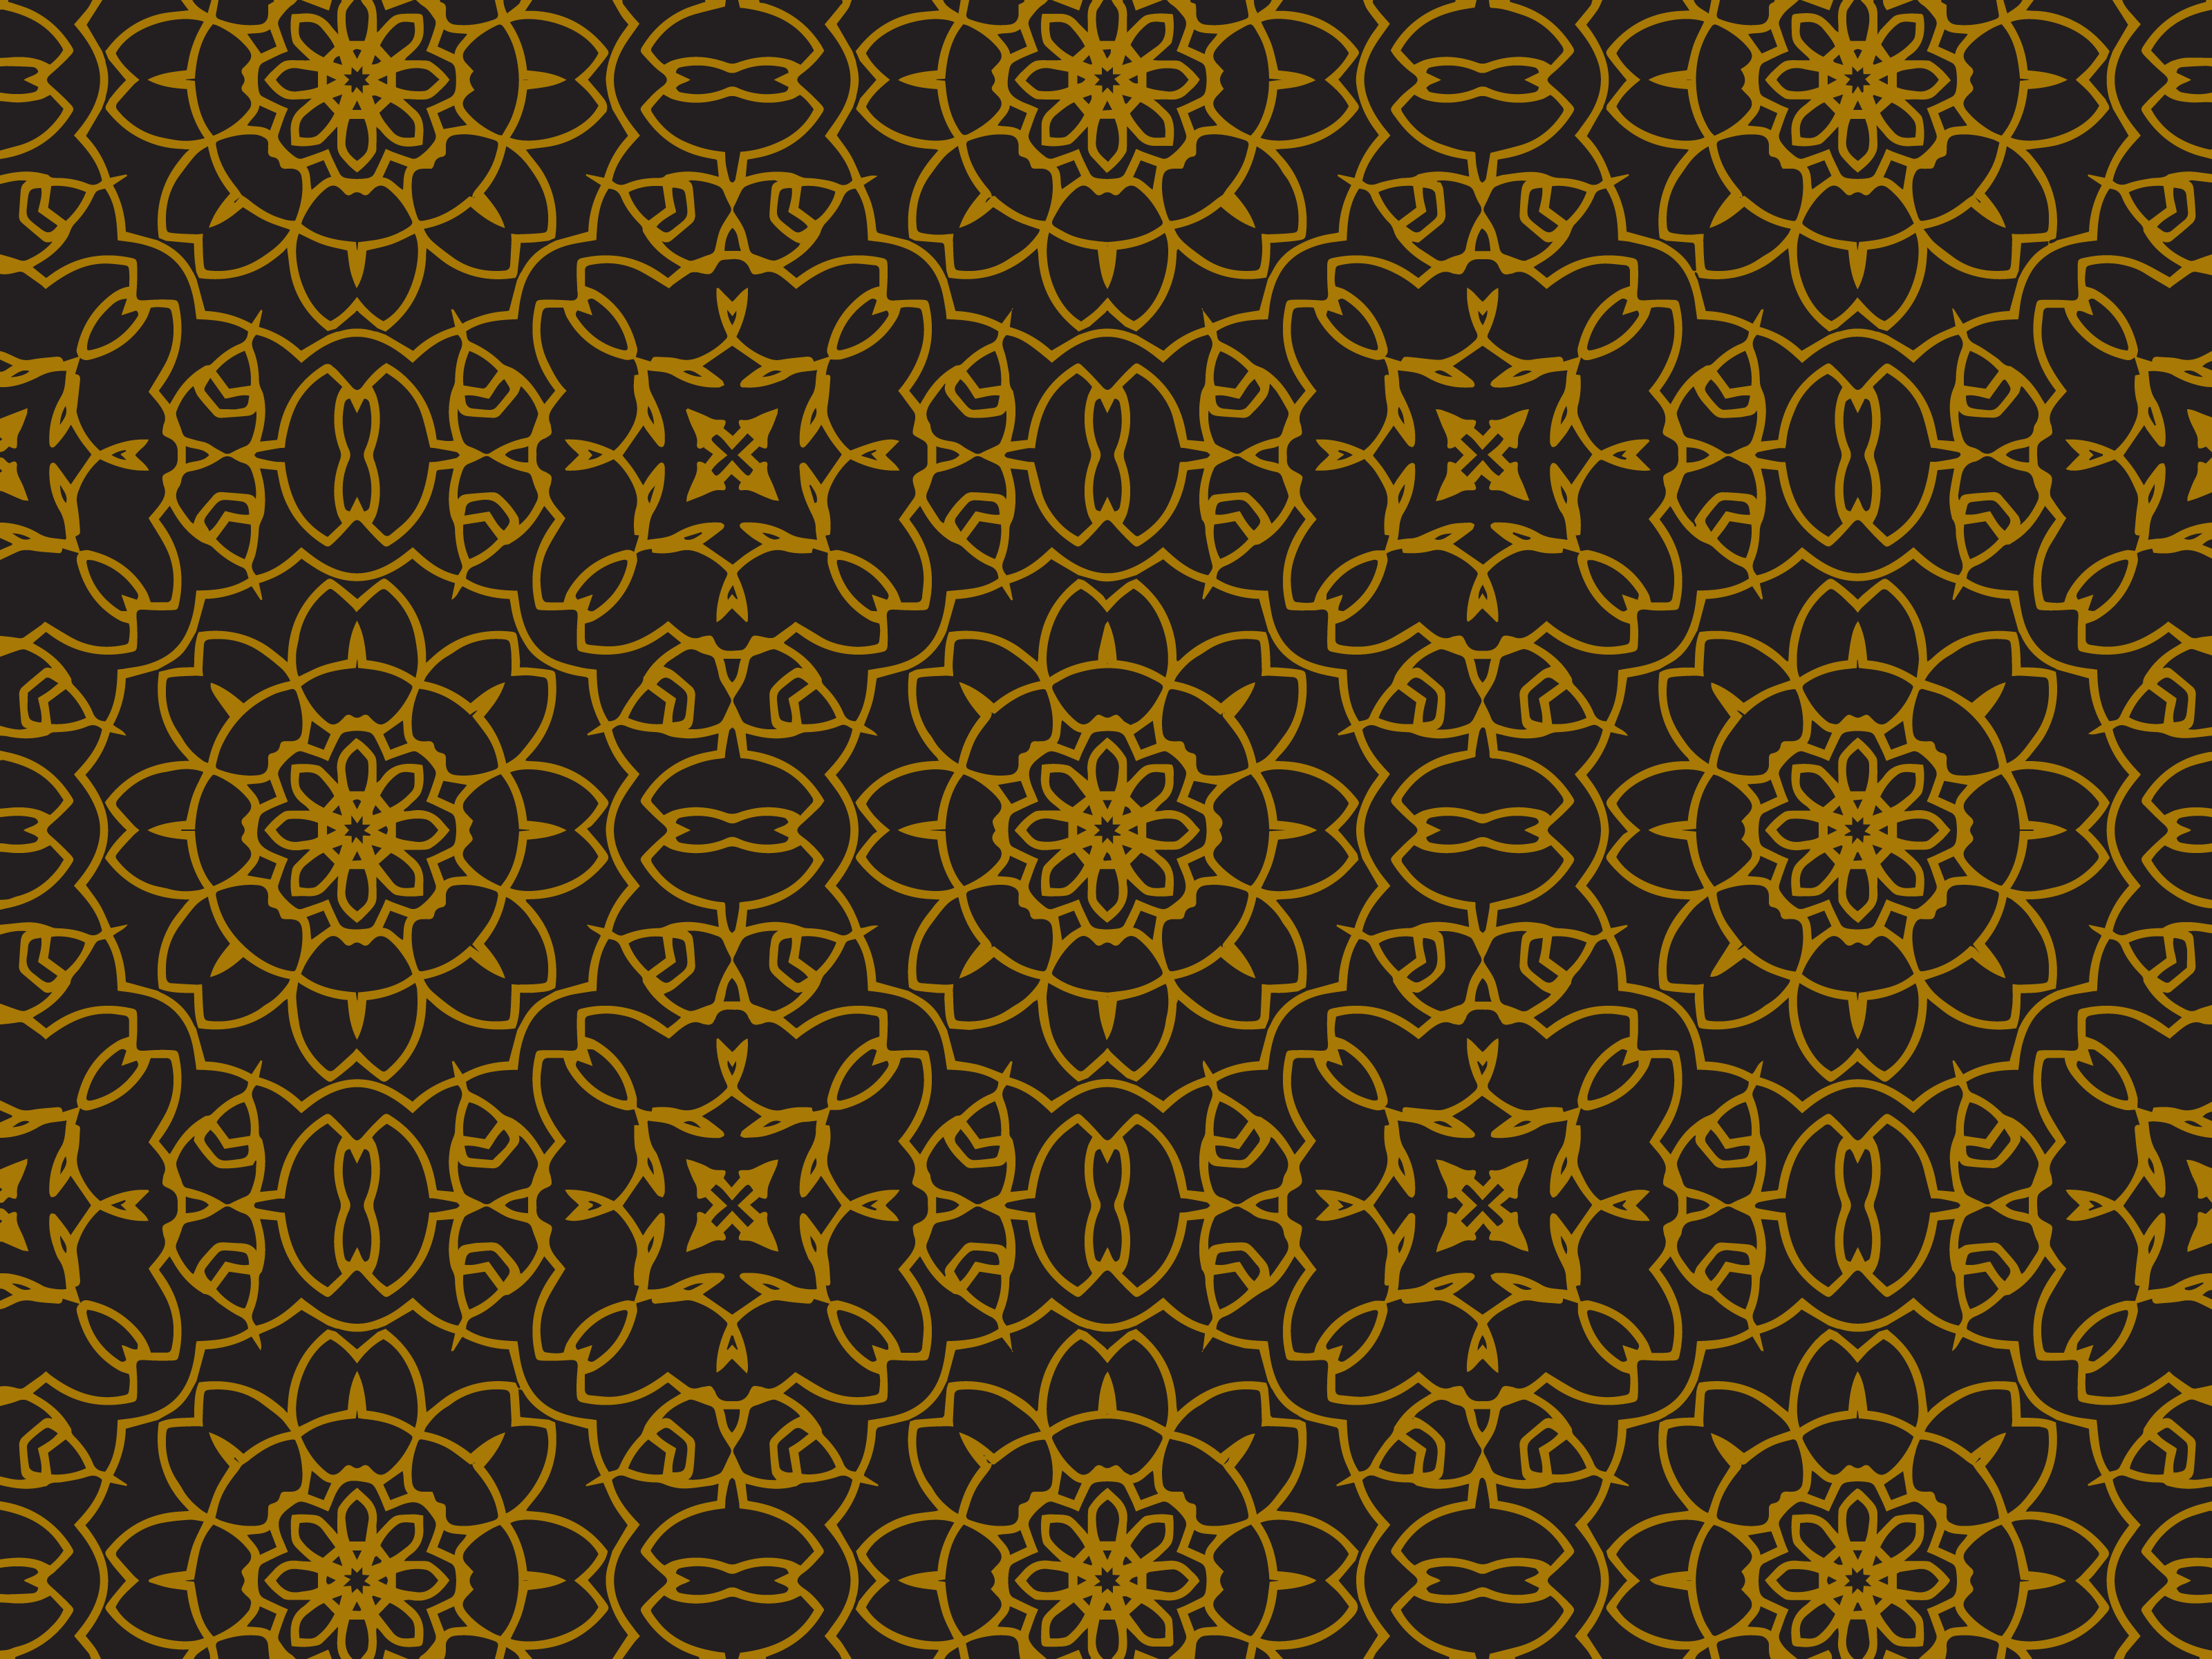 Download Free Pattern Gold Abstract Texture Graphic By Silkymilkycreative for Cricut Explore, Silhouette and other cutting machines.